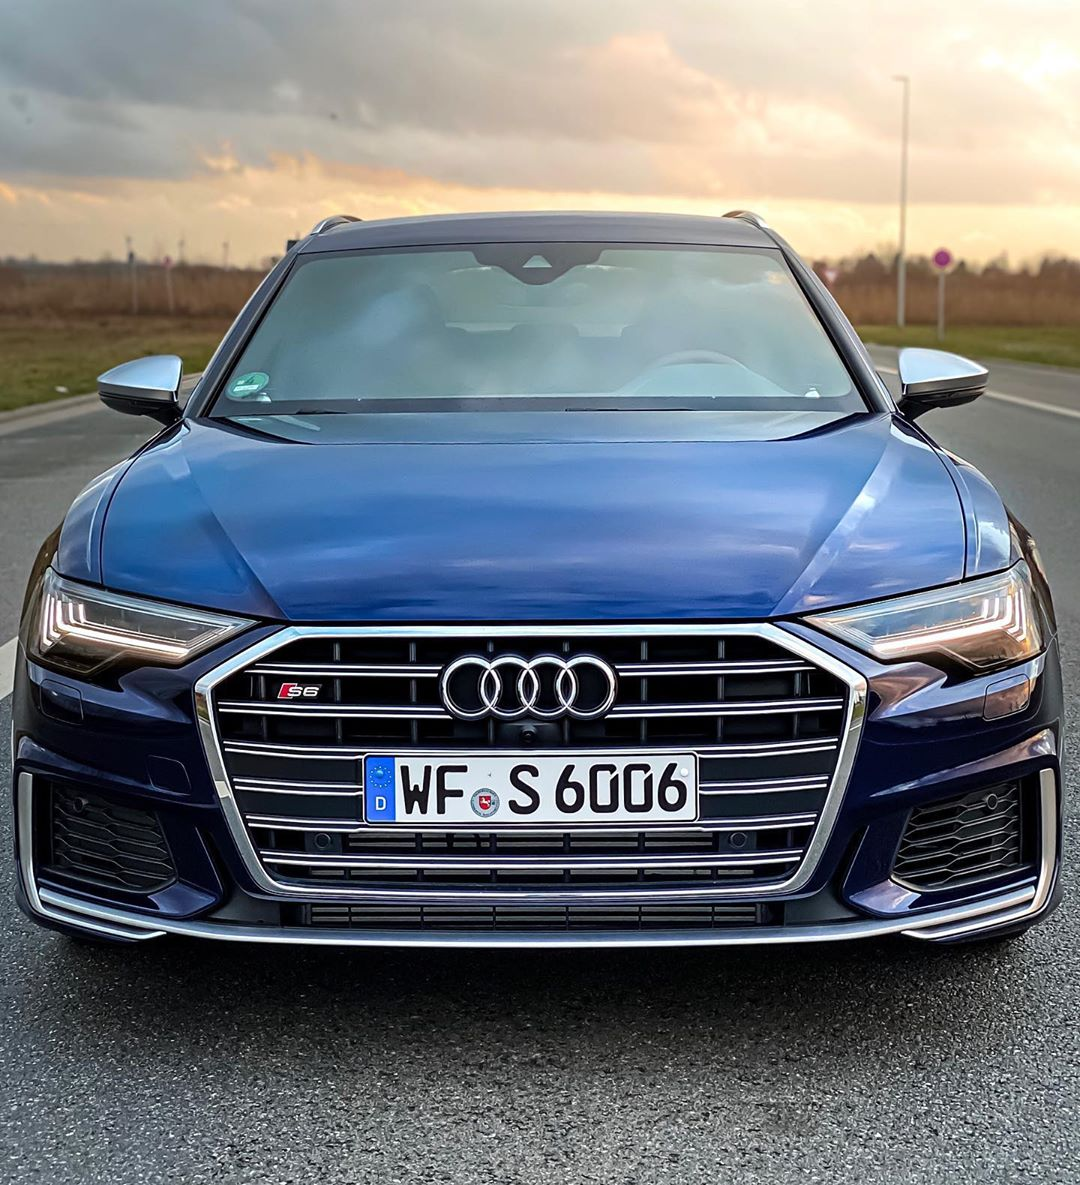 Our 15 min. YouTube video of this S6 TDI is now out on our channel🙌…lots of talking & many detailed aspects about engine, sound, handling & costs! Make sure to subscribe right away to don't miss out on some more cool stuff coming soon🙏 #audis #audis6 #audia6c8 #audis6c8 #a6competition #s6 #s6avant #s6tdi #automanntv #automannsgarage #navarrablue